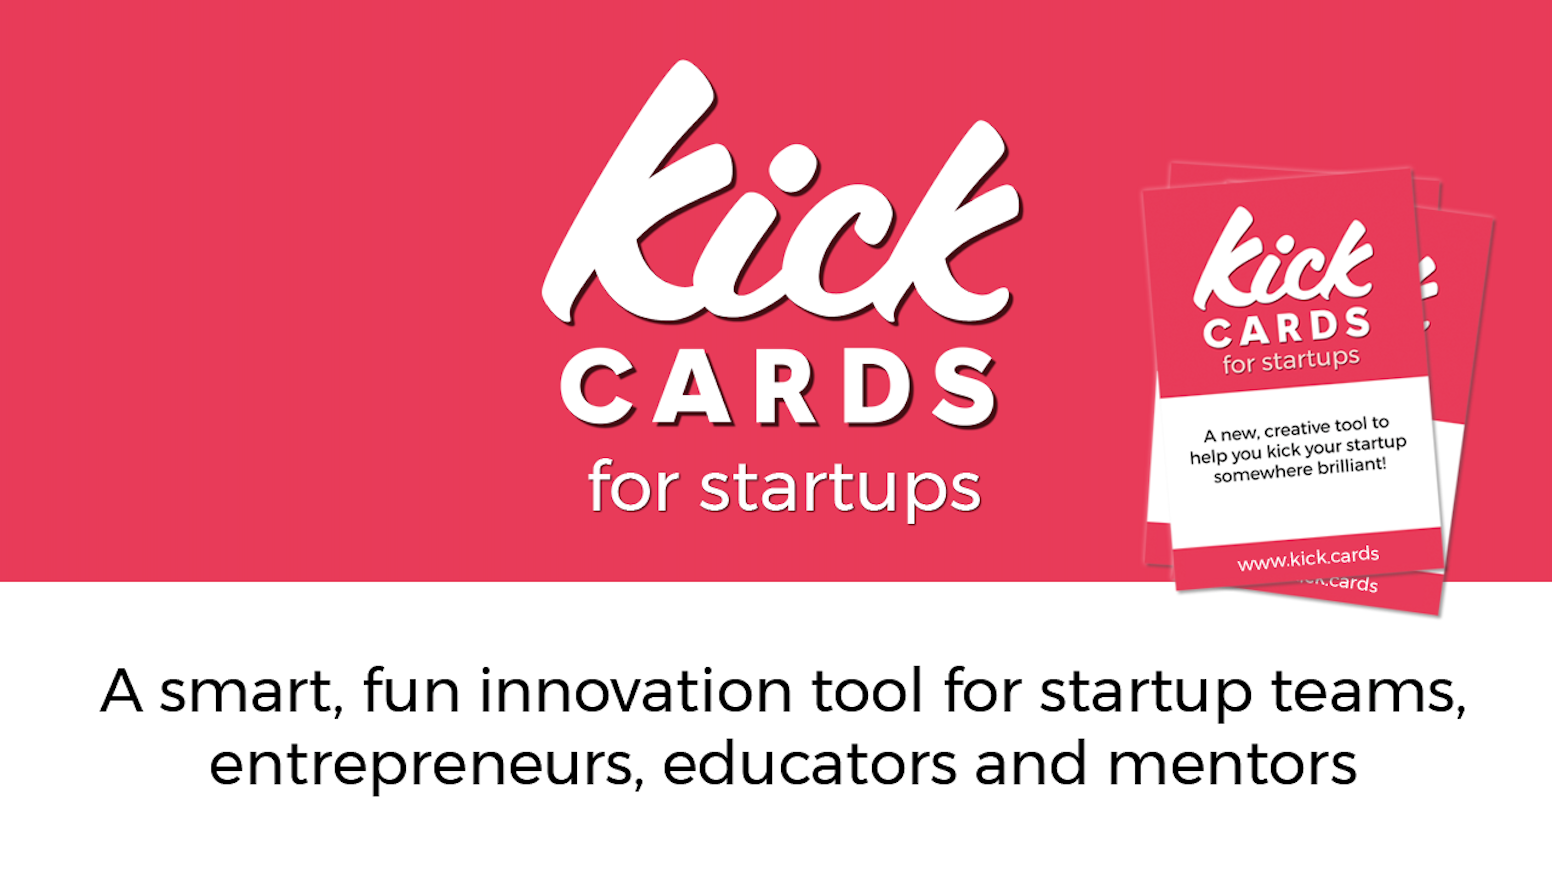 A deck of cards - each with a question or exercise to help startup businesses shine. For teams, entrepreneurs, educators and mentors.